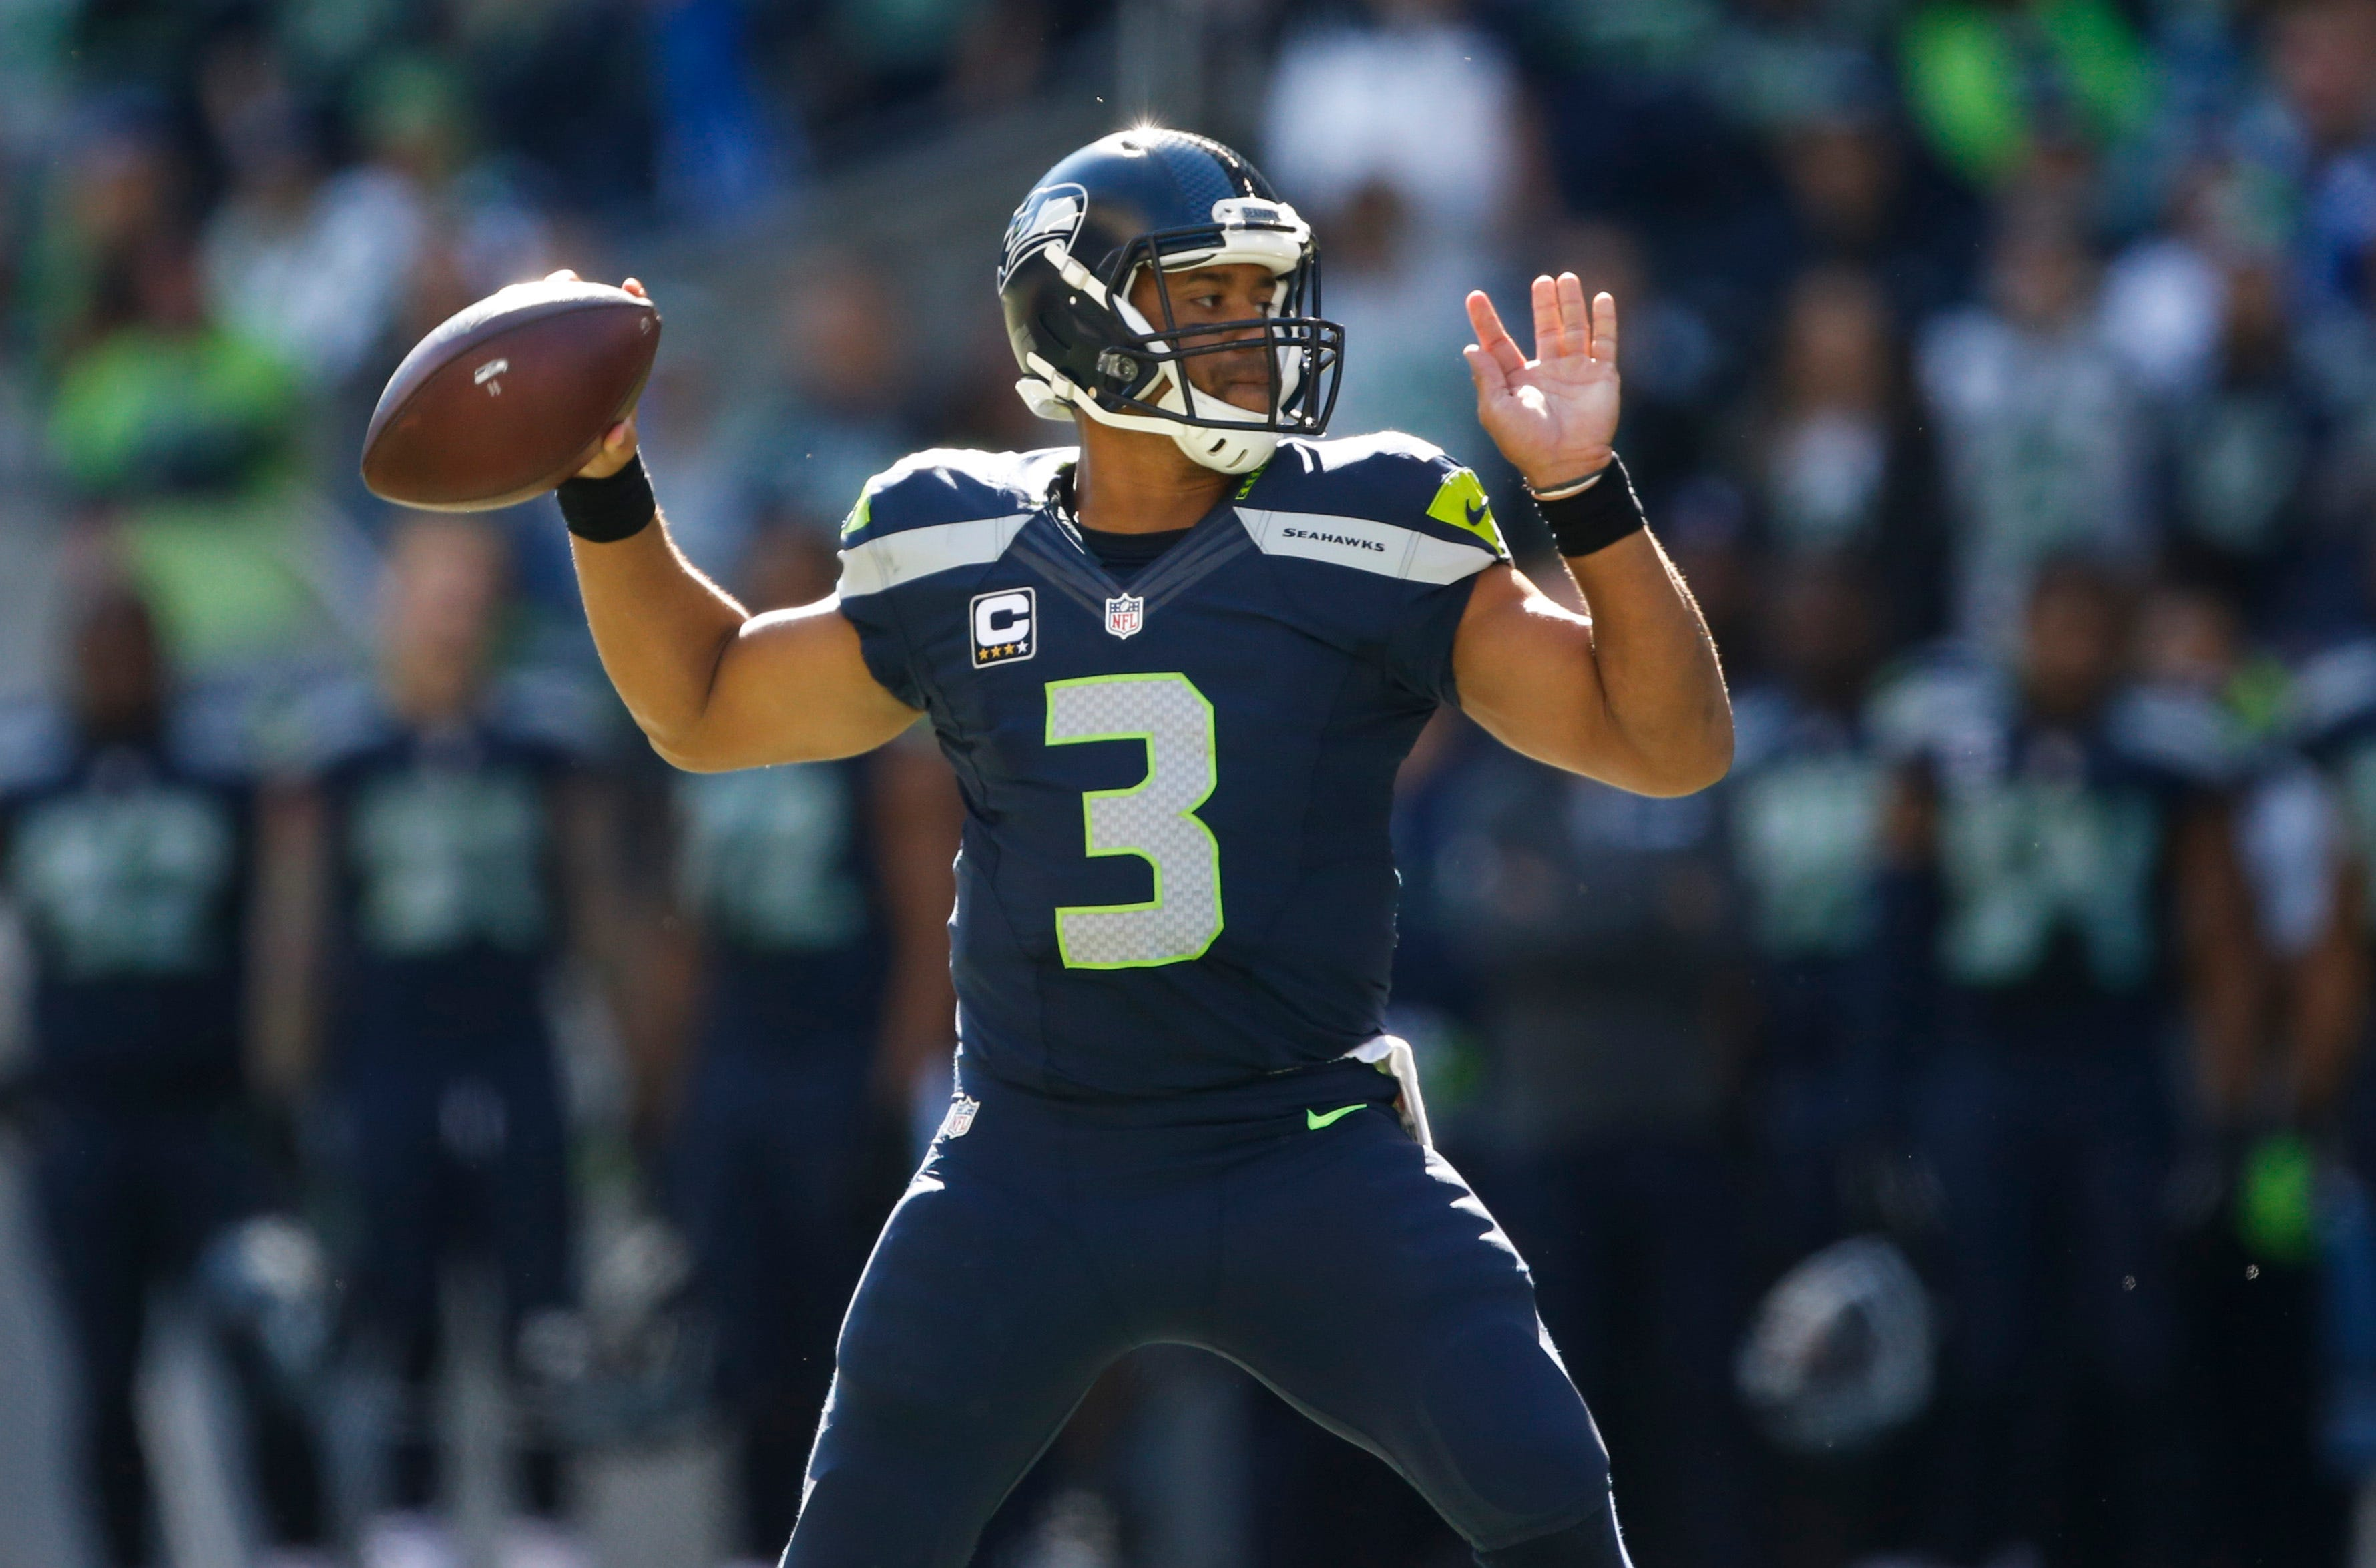 Russell Wilson's Seahawks jersey the